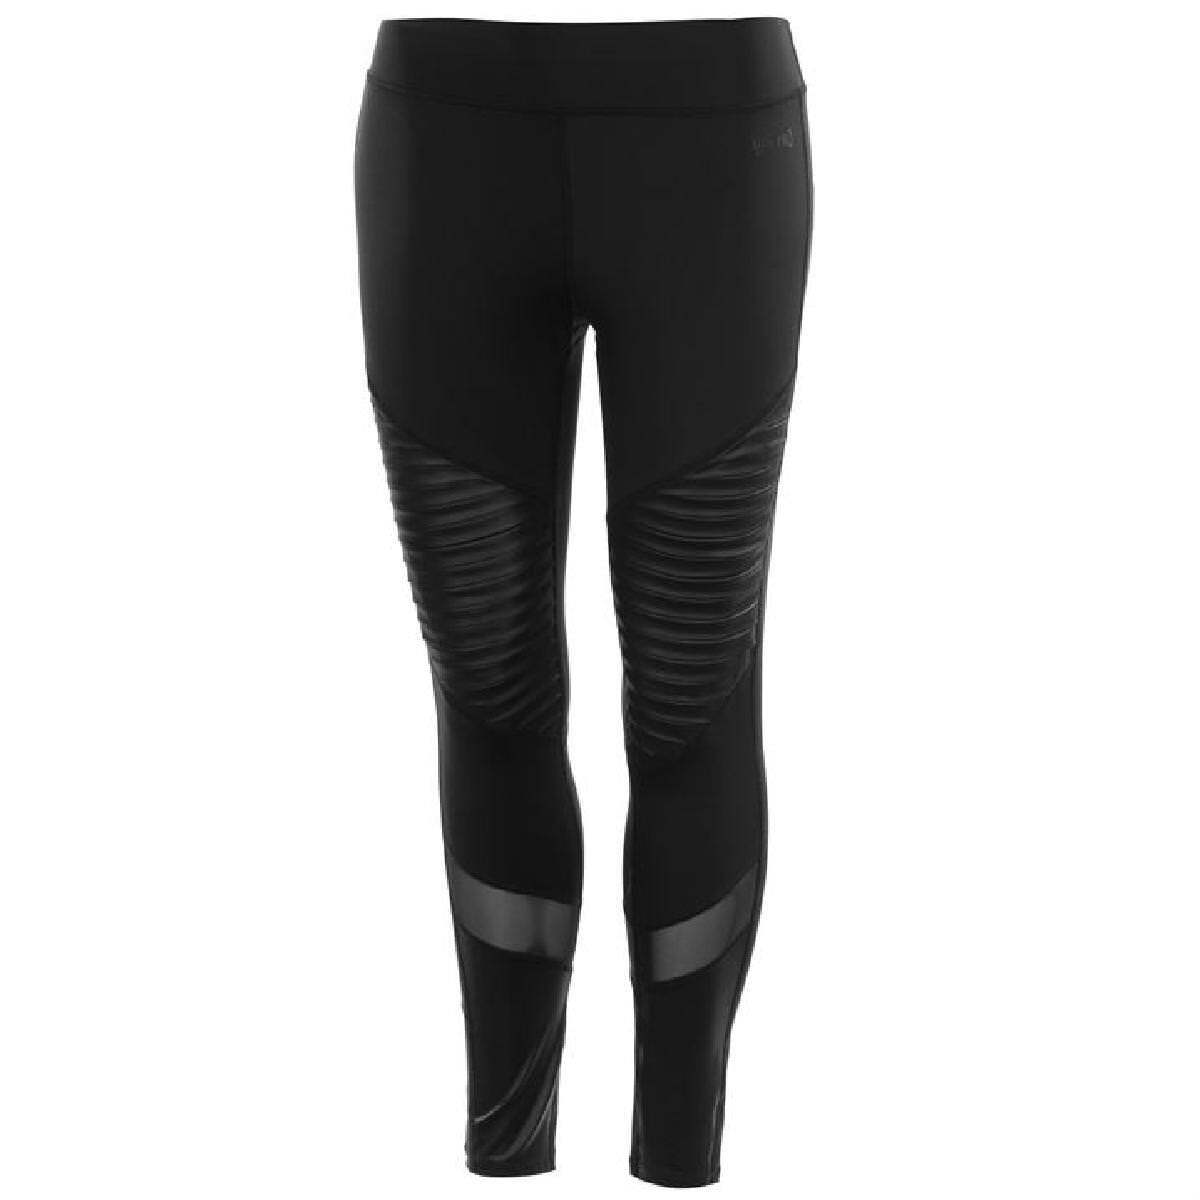 USA Pro Da Donna Leggings Tights pantaloni pantaloni sportivi 36 (S) Fitness Jogging Sport 7515